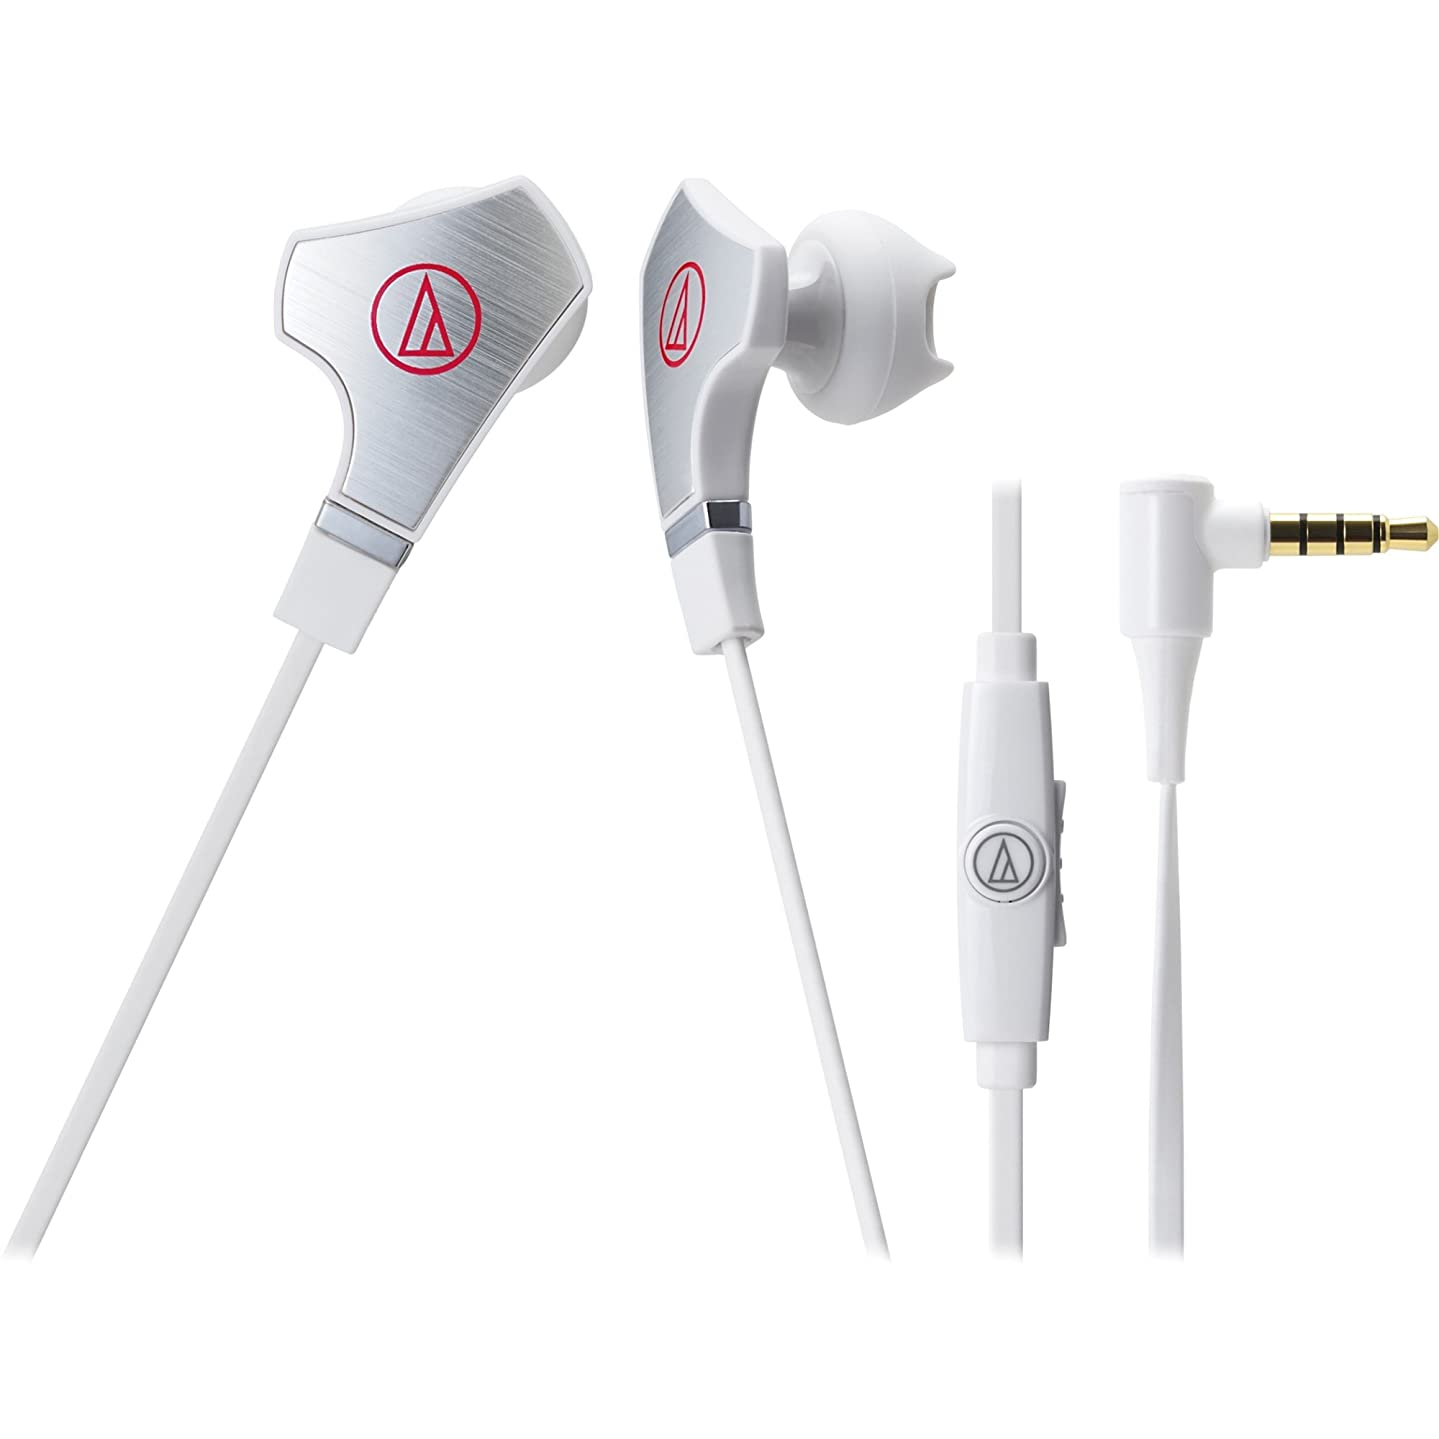 Audio Technica Audio-Technica ATH-CHX7iS SonicFuel Hybrid Earbud Headphones for Smartphones, Stereo - White - Mini-phone - Wired - 16 Ohm - 15 Hz - 22 kHz - Gold Plated - Earbud - Binaural - In-ear - 3.94 ft Cable - Condenser, Omni-directional Microphone A